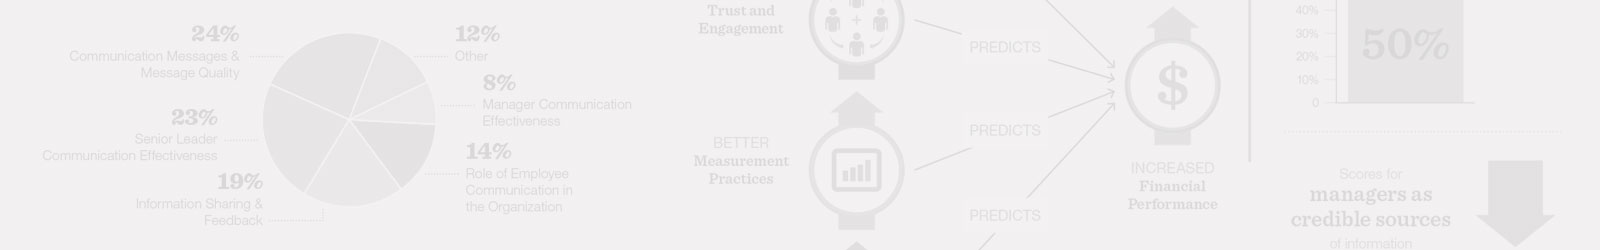 Now available – The 2017 ROI Communication Benchmark™ Report